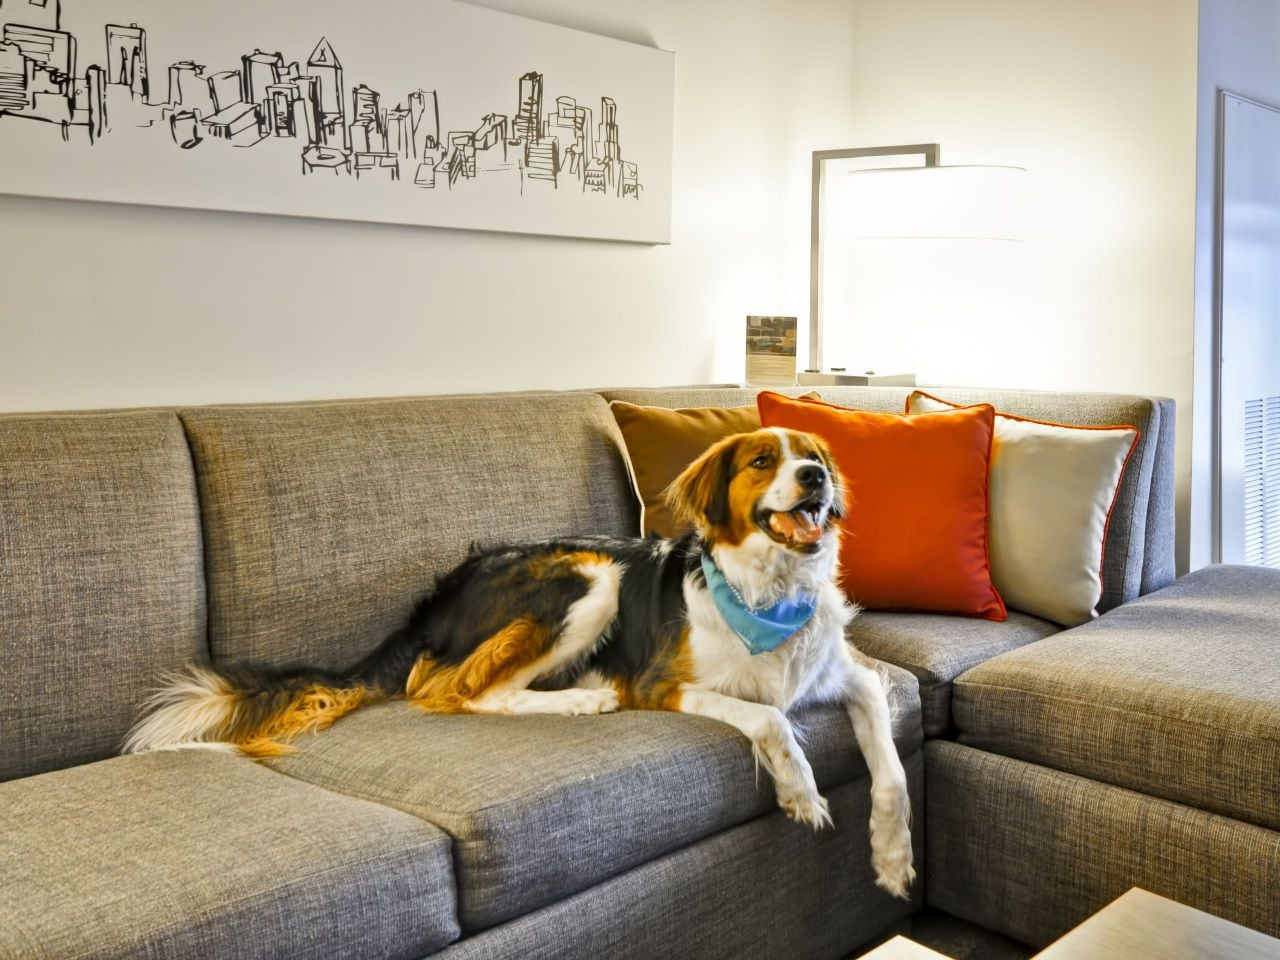 Hyatt Place West Palm Beach Downtown Dog on Couch